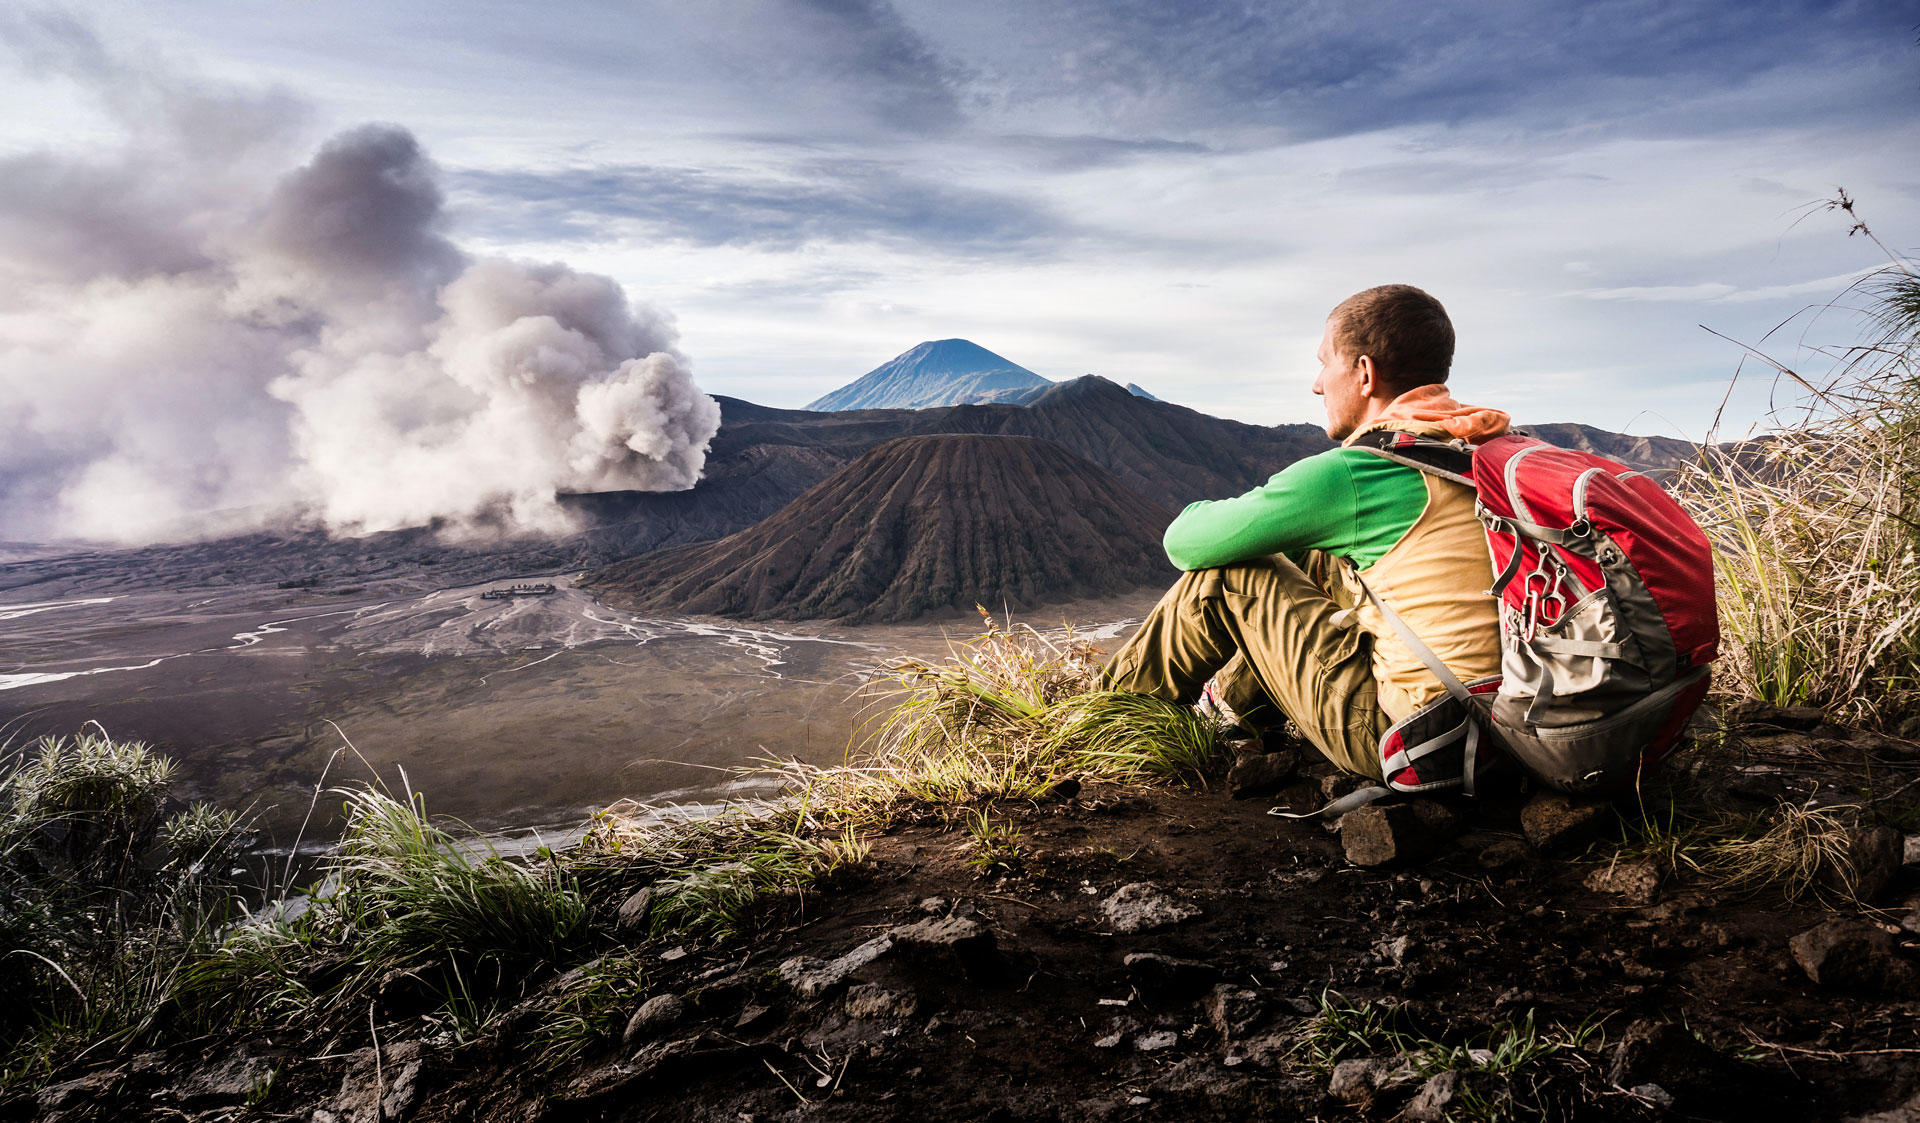 A boy sitting on a hill watching an erupting volcano. Image of the Master's Programme in Geology and Geophysics at the University of Helsinki.